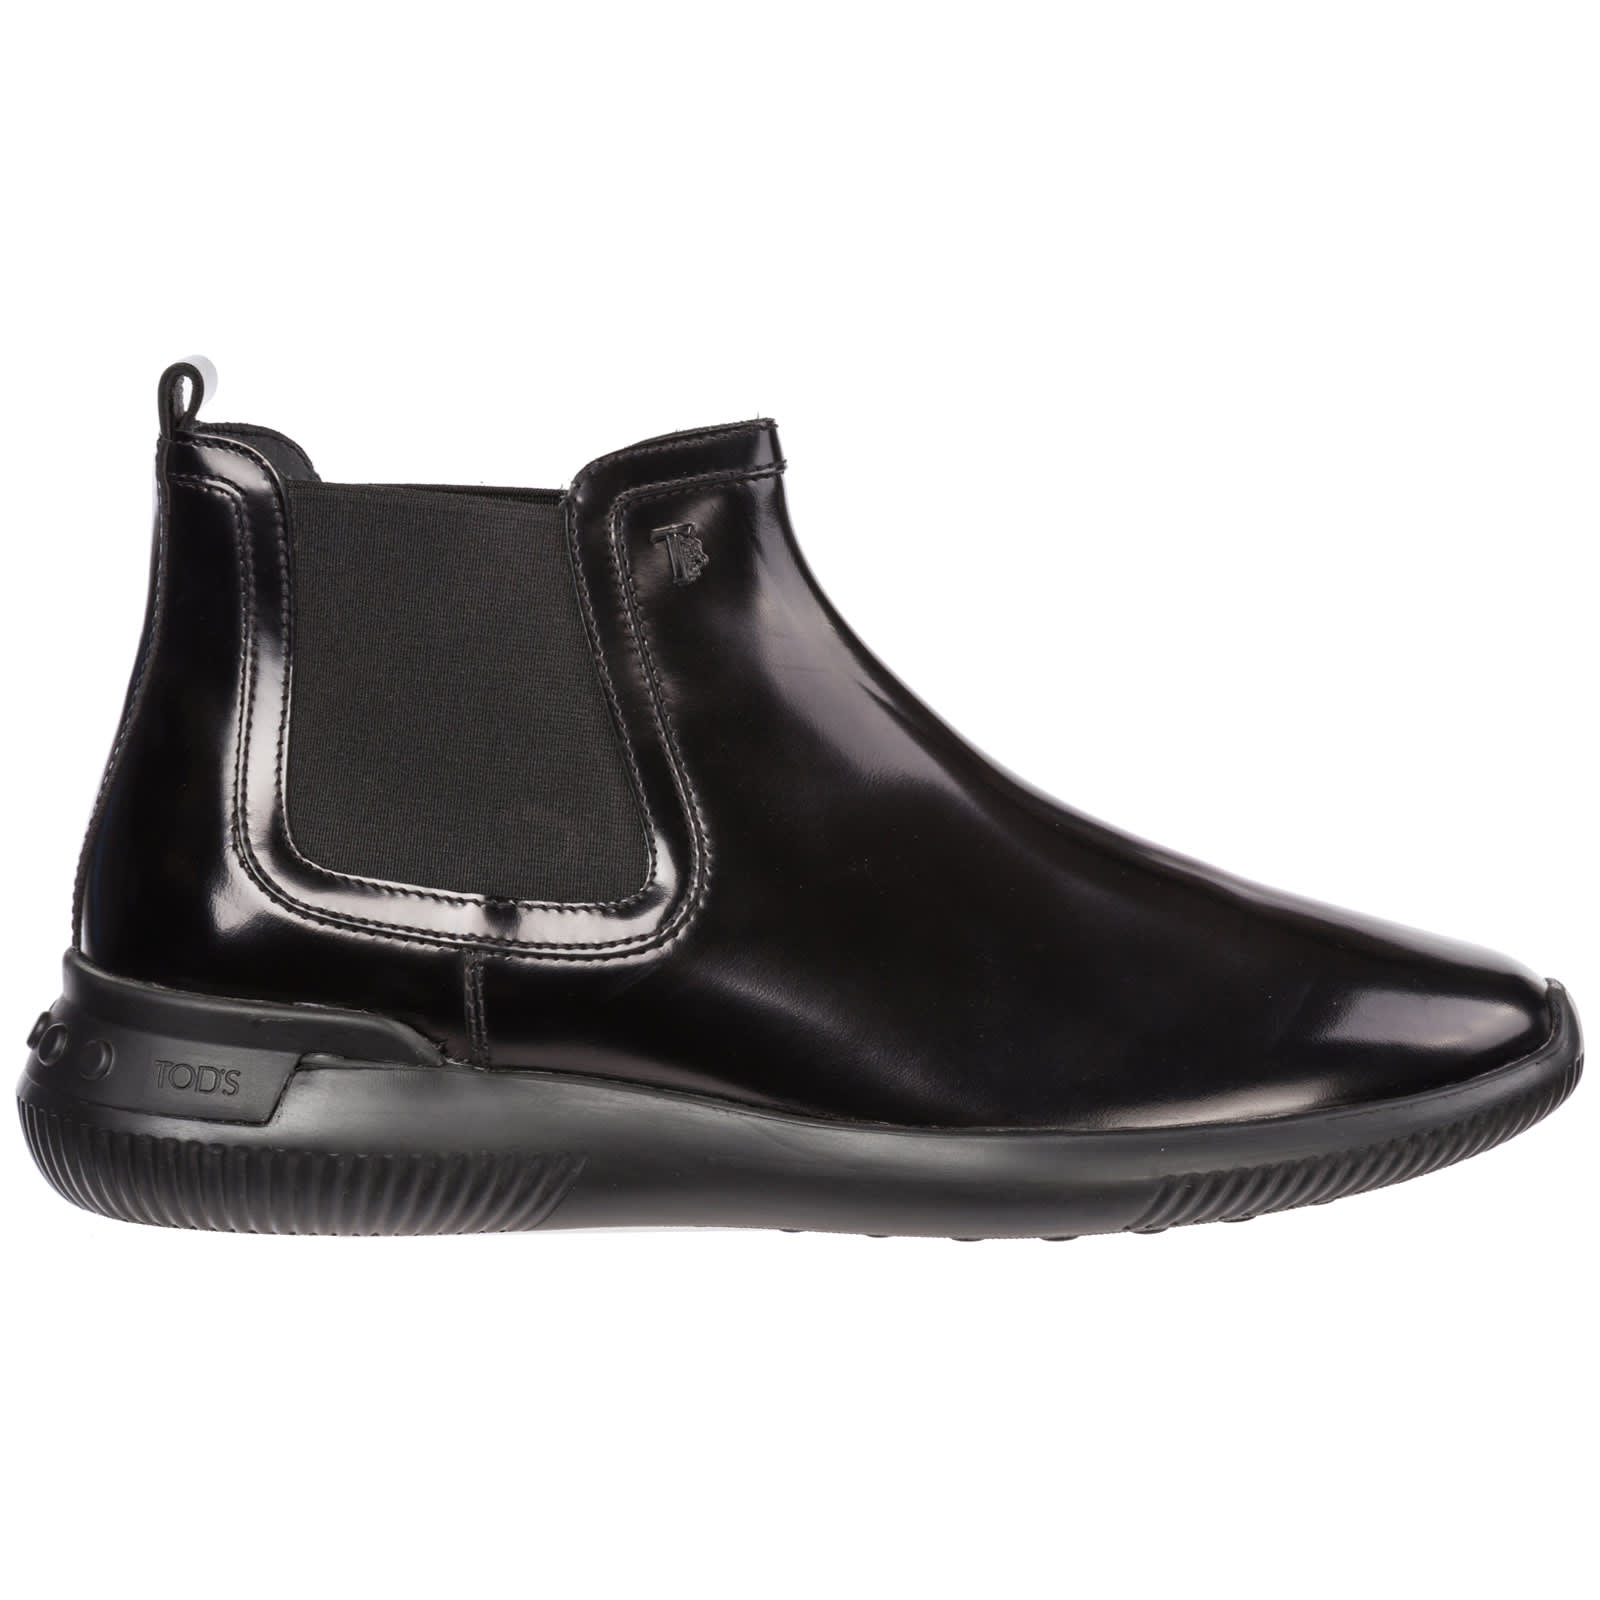 Tods No code 01 Ankle Boots